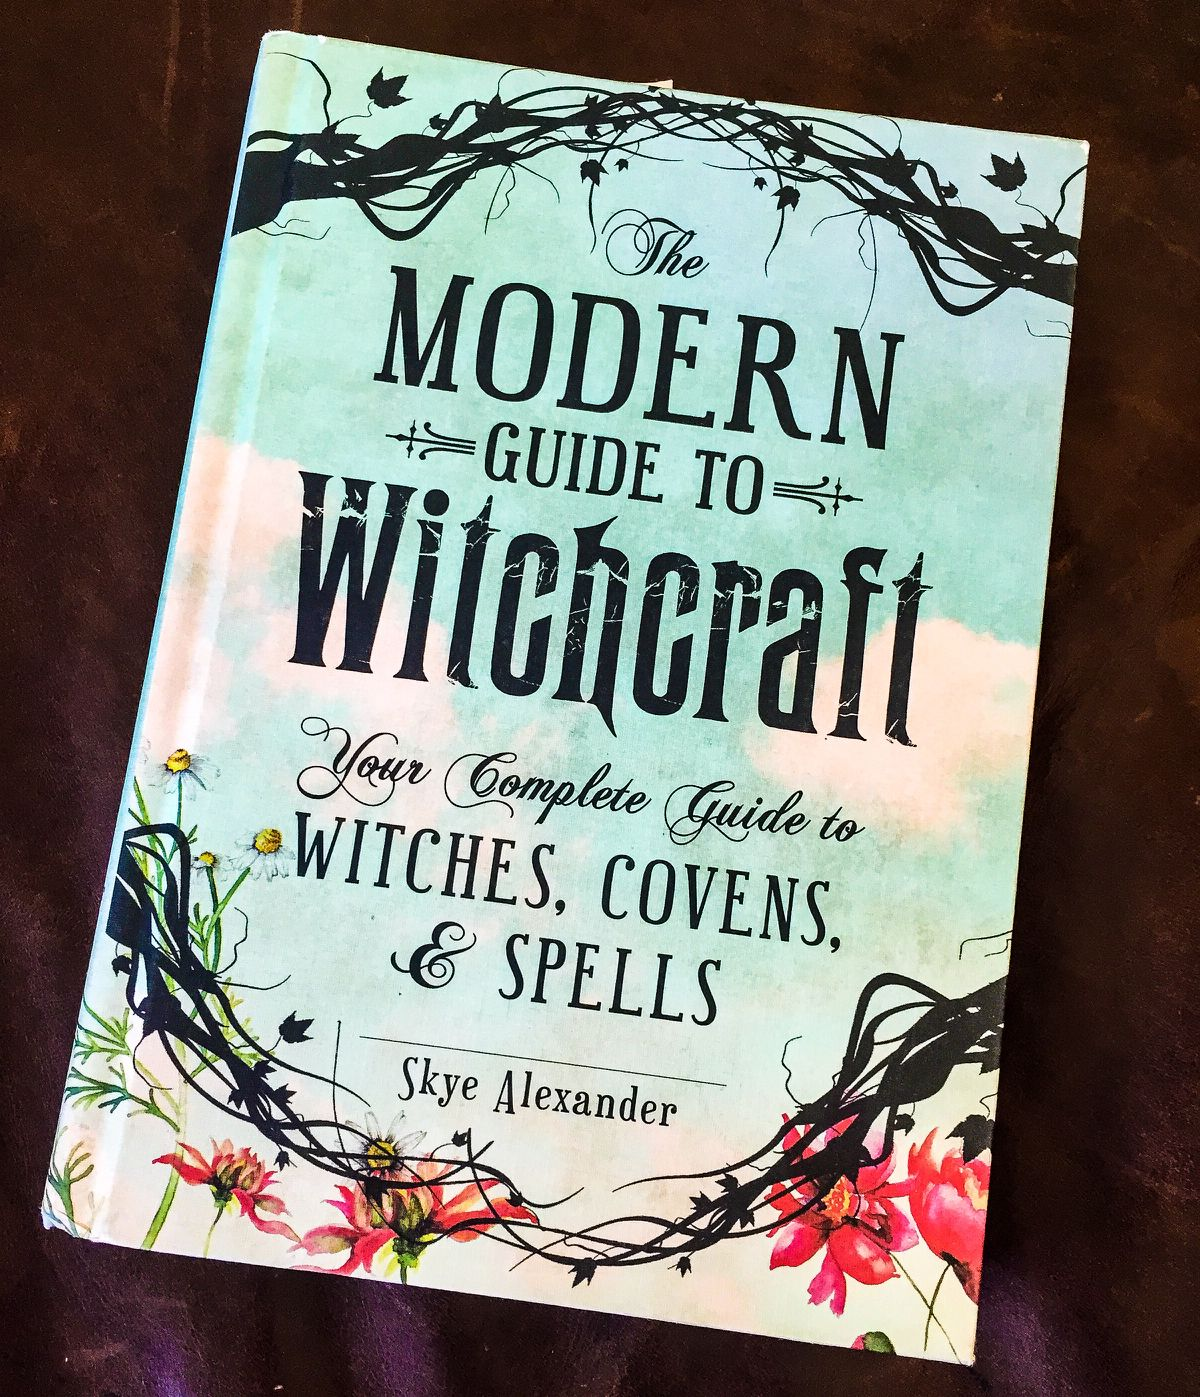 I highly recommend The Modern Guide To Witchcraft by Skye Alexander ...